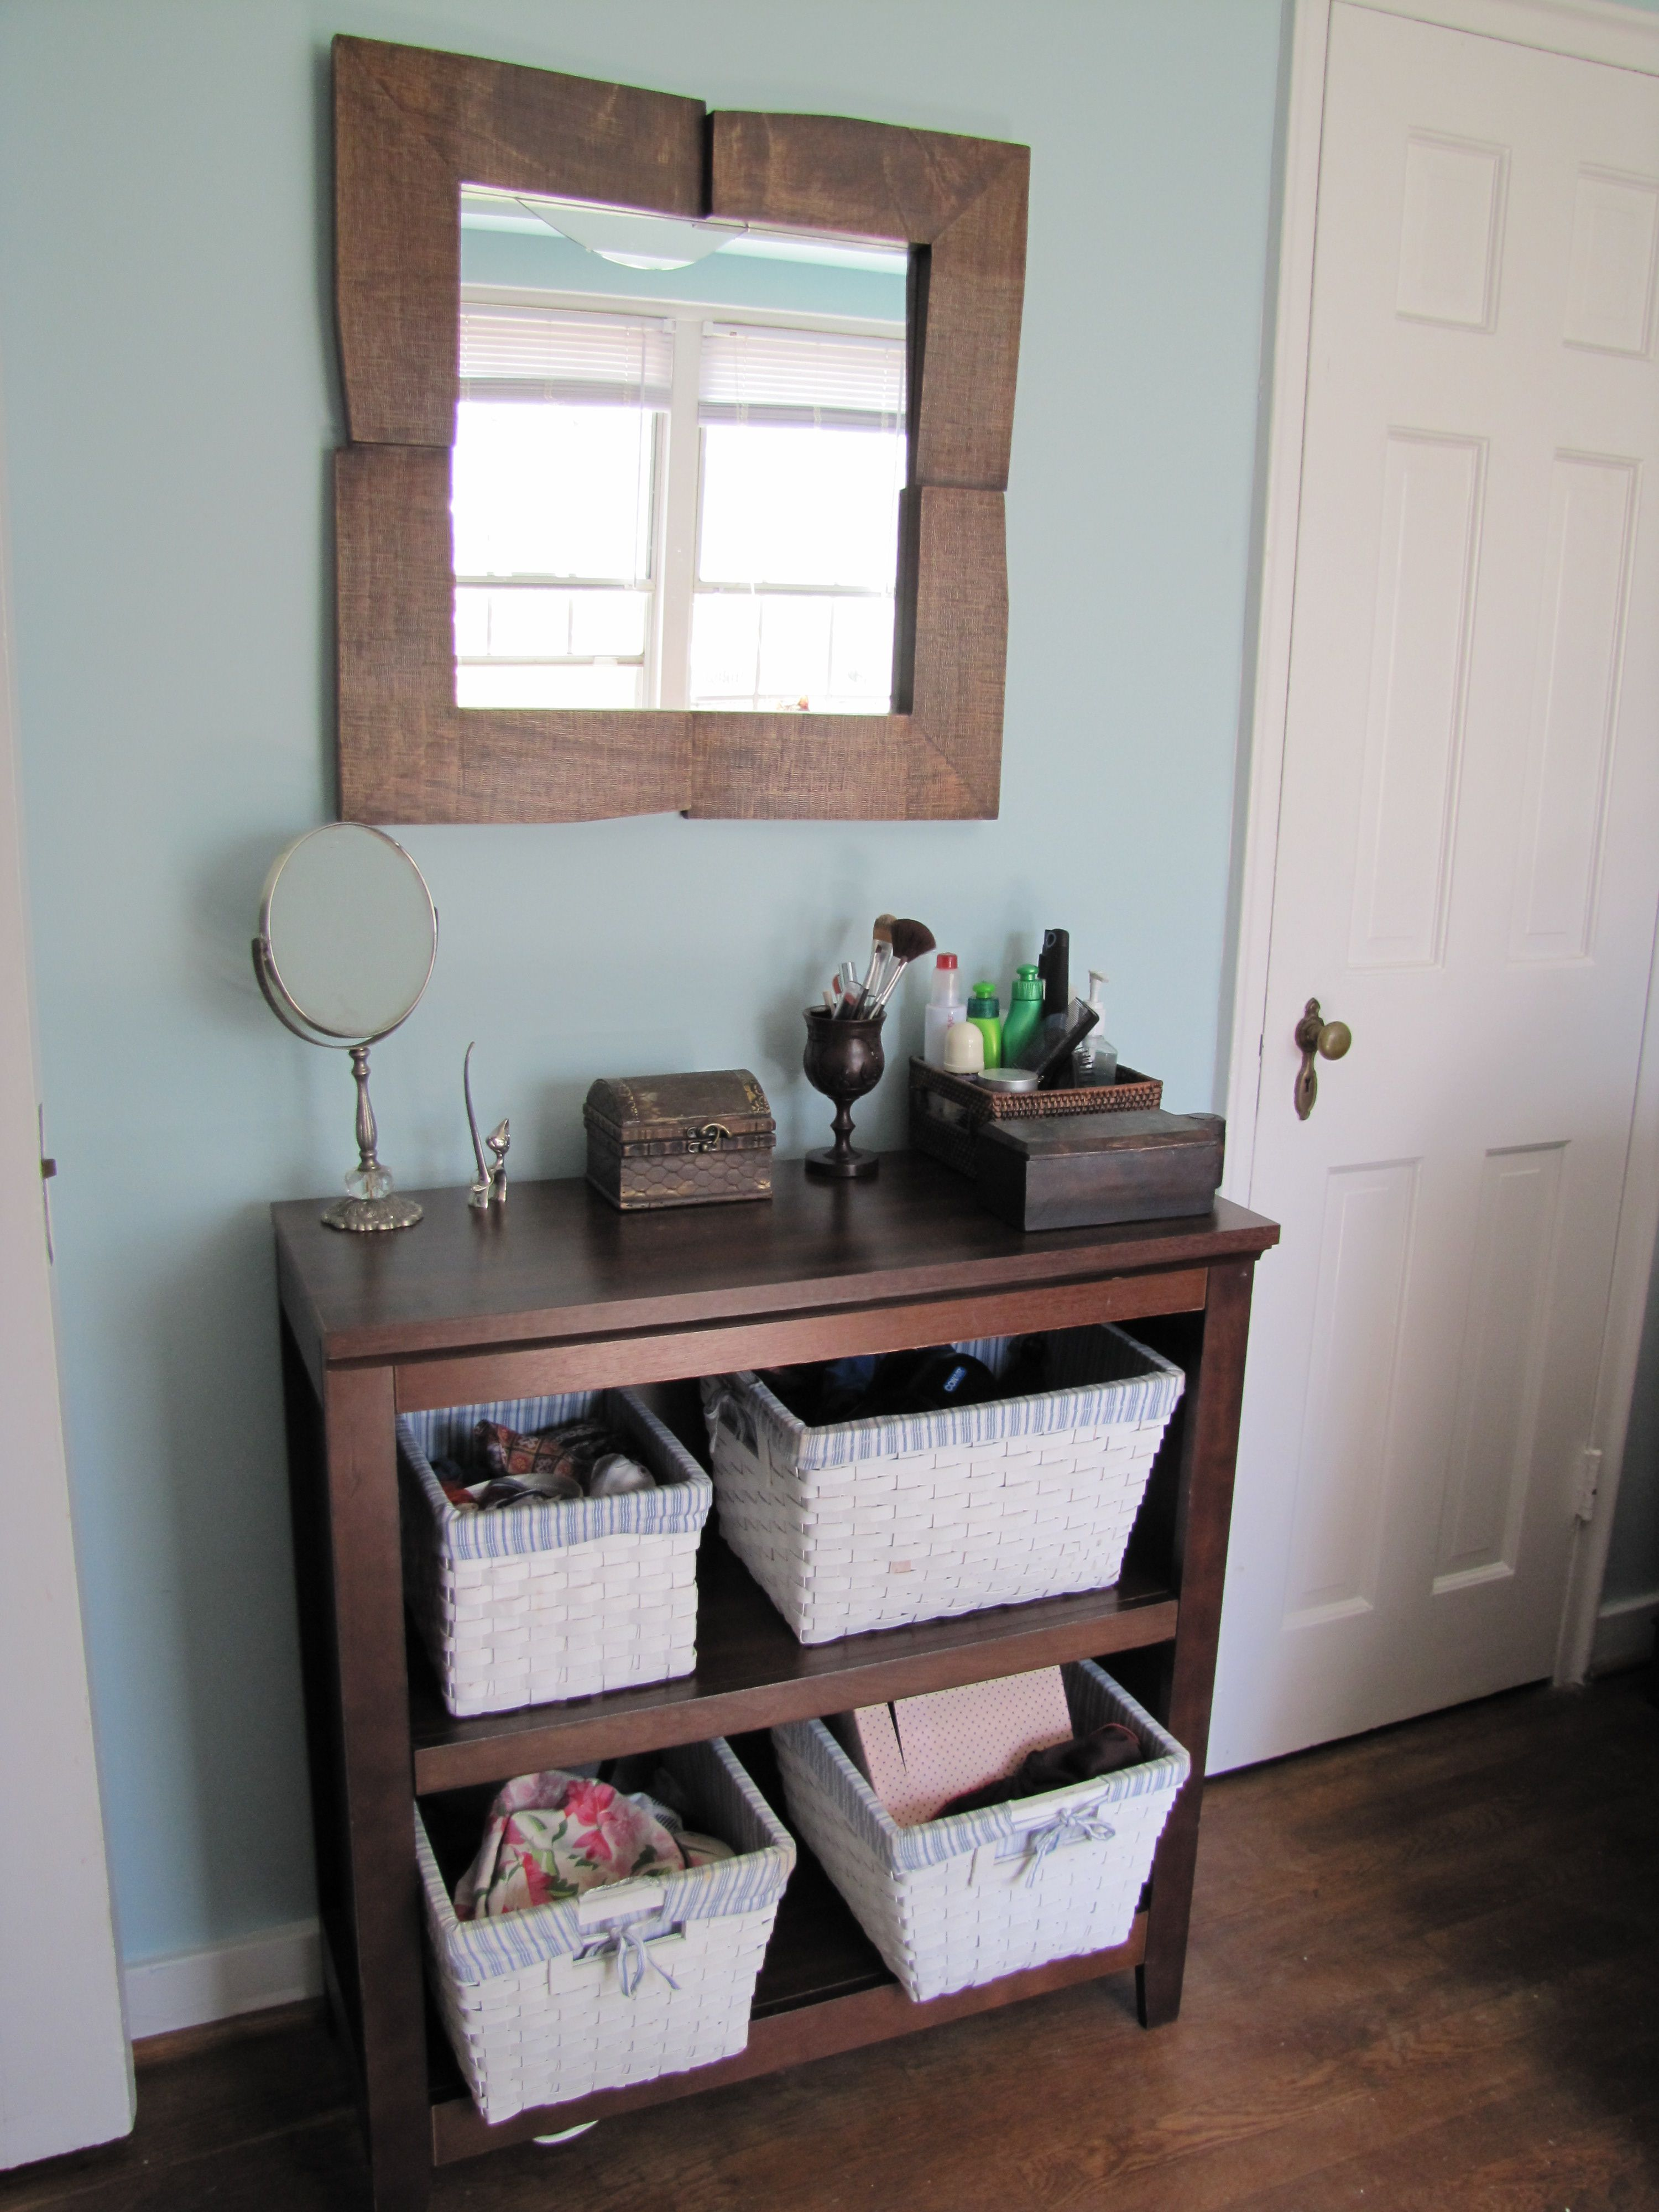 Beautification Station For Those Of Us With Tiny Bathrooms COULD DO BASKETS IN THE BUILT INS Why Didnt I Think This Earlier